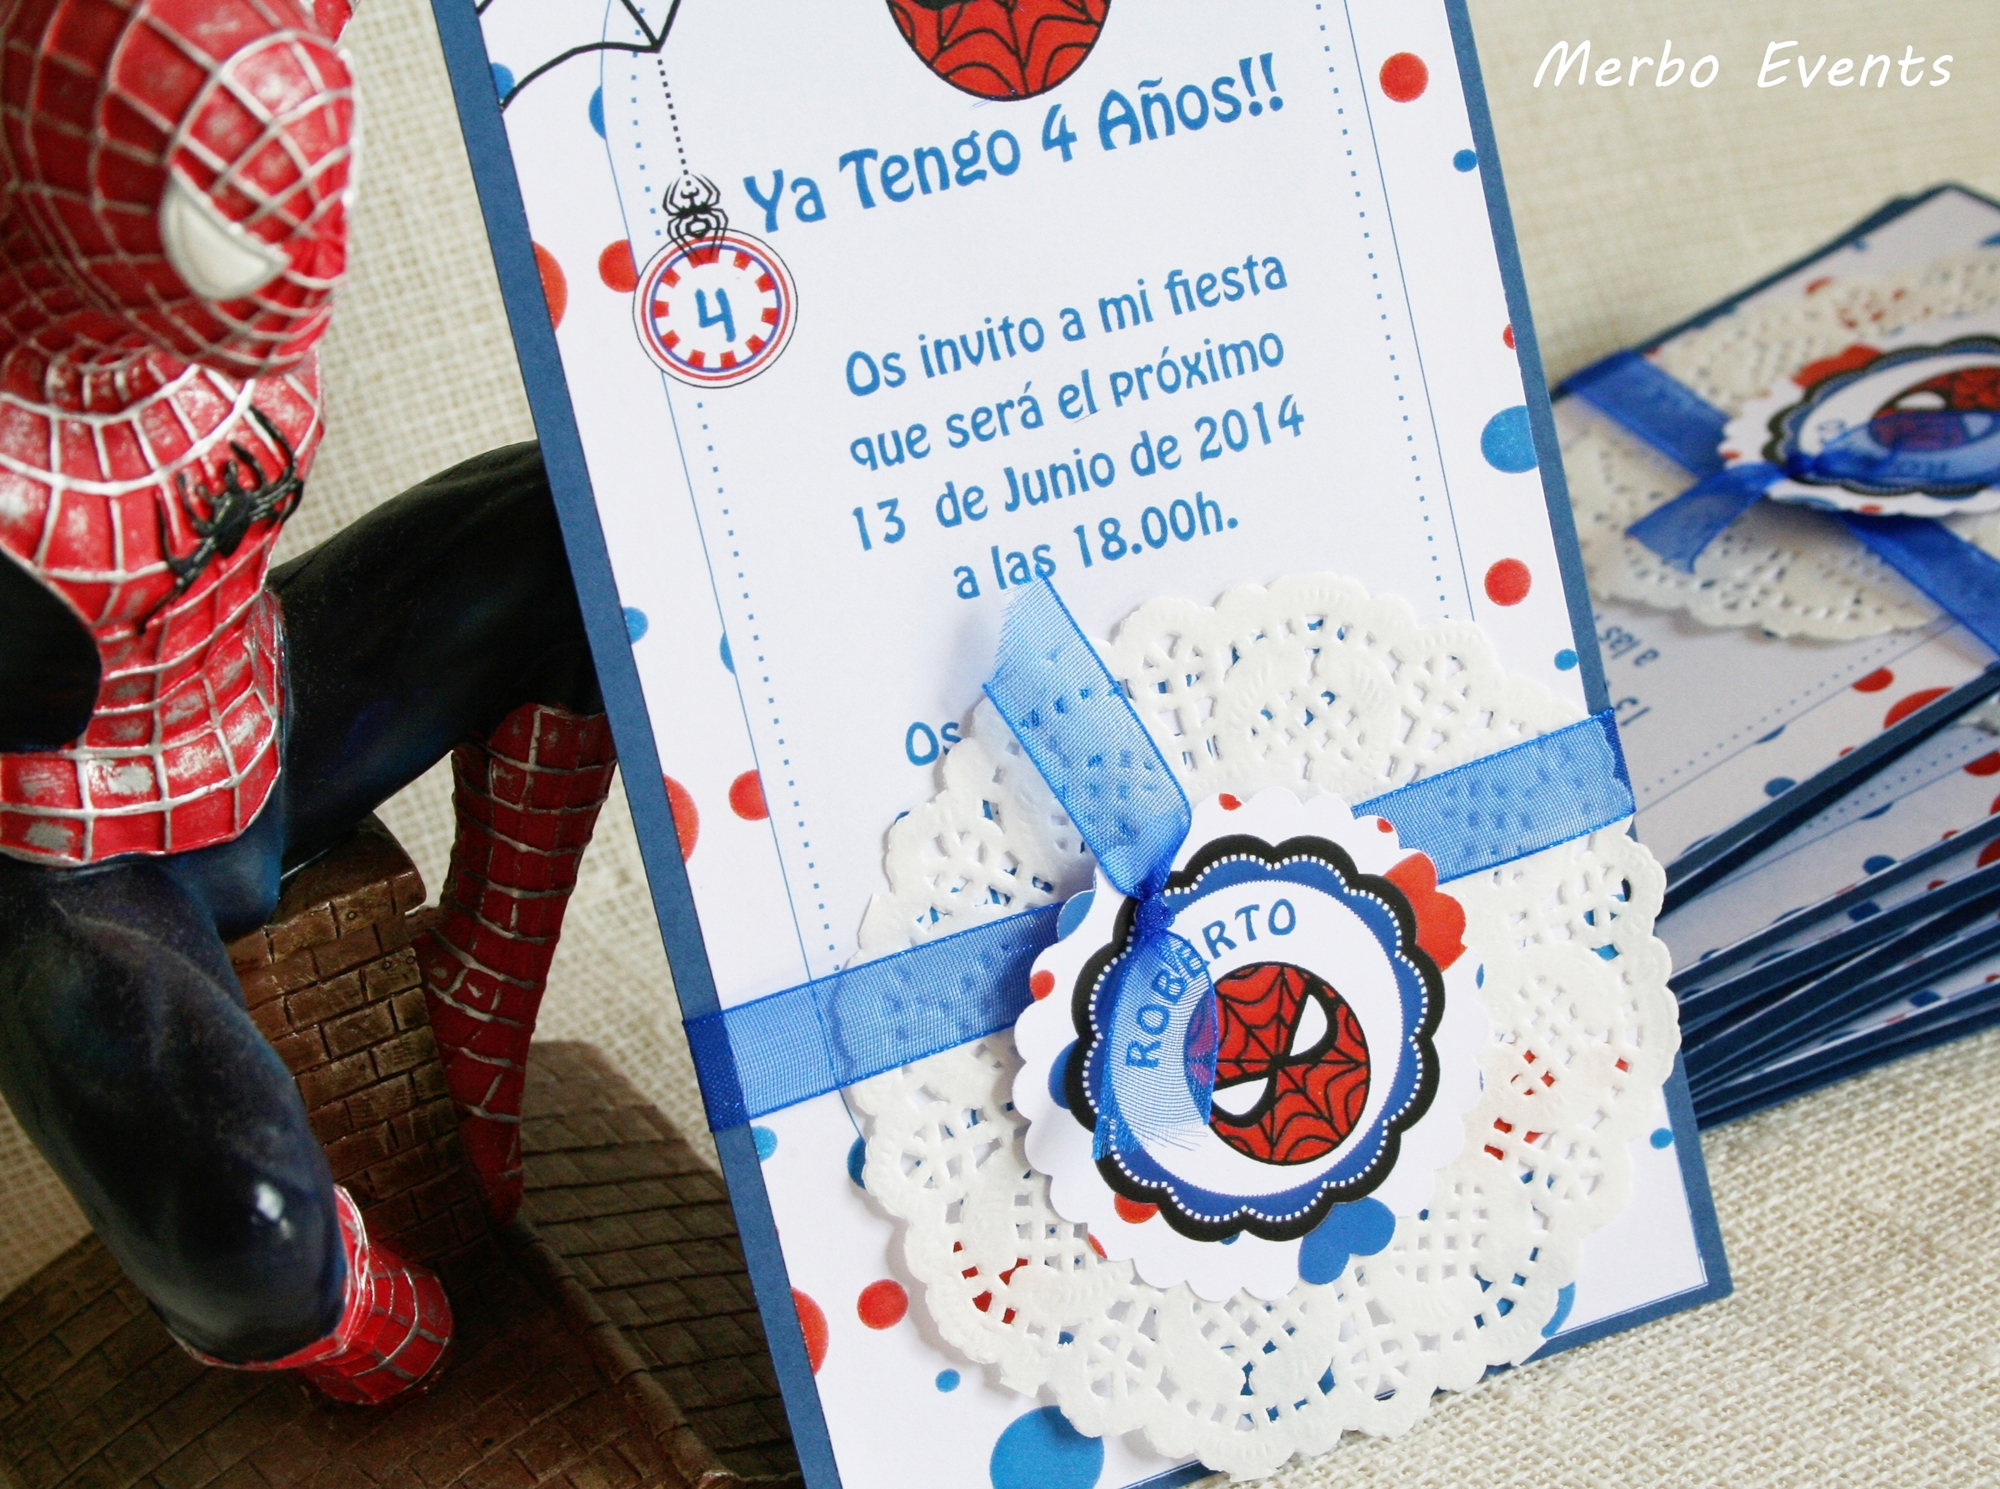 Invitaciones Cumpleaños Spiderman - Merbo Events